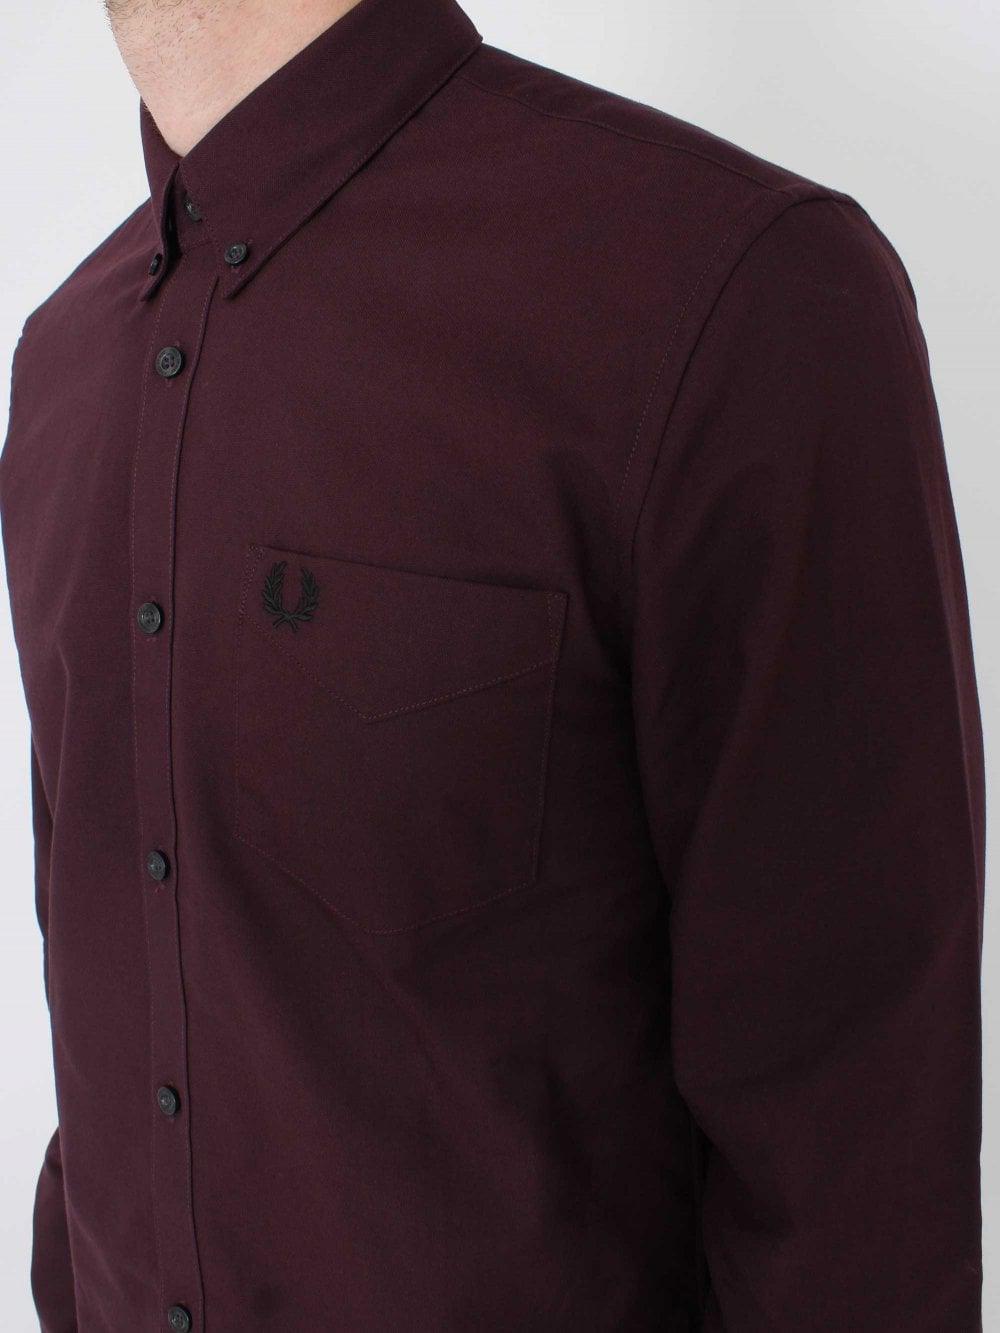 76eef3cabcee96 Fred Perry Classic Oxford Shirt in Mahogany | Northern Threads